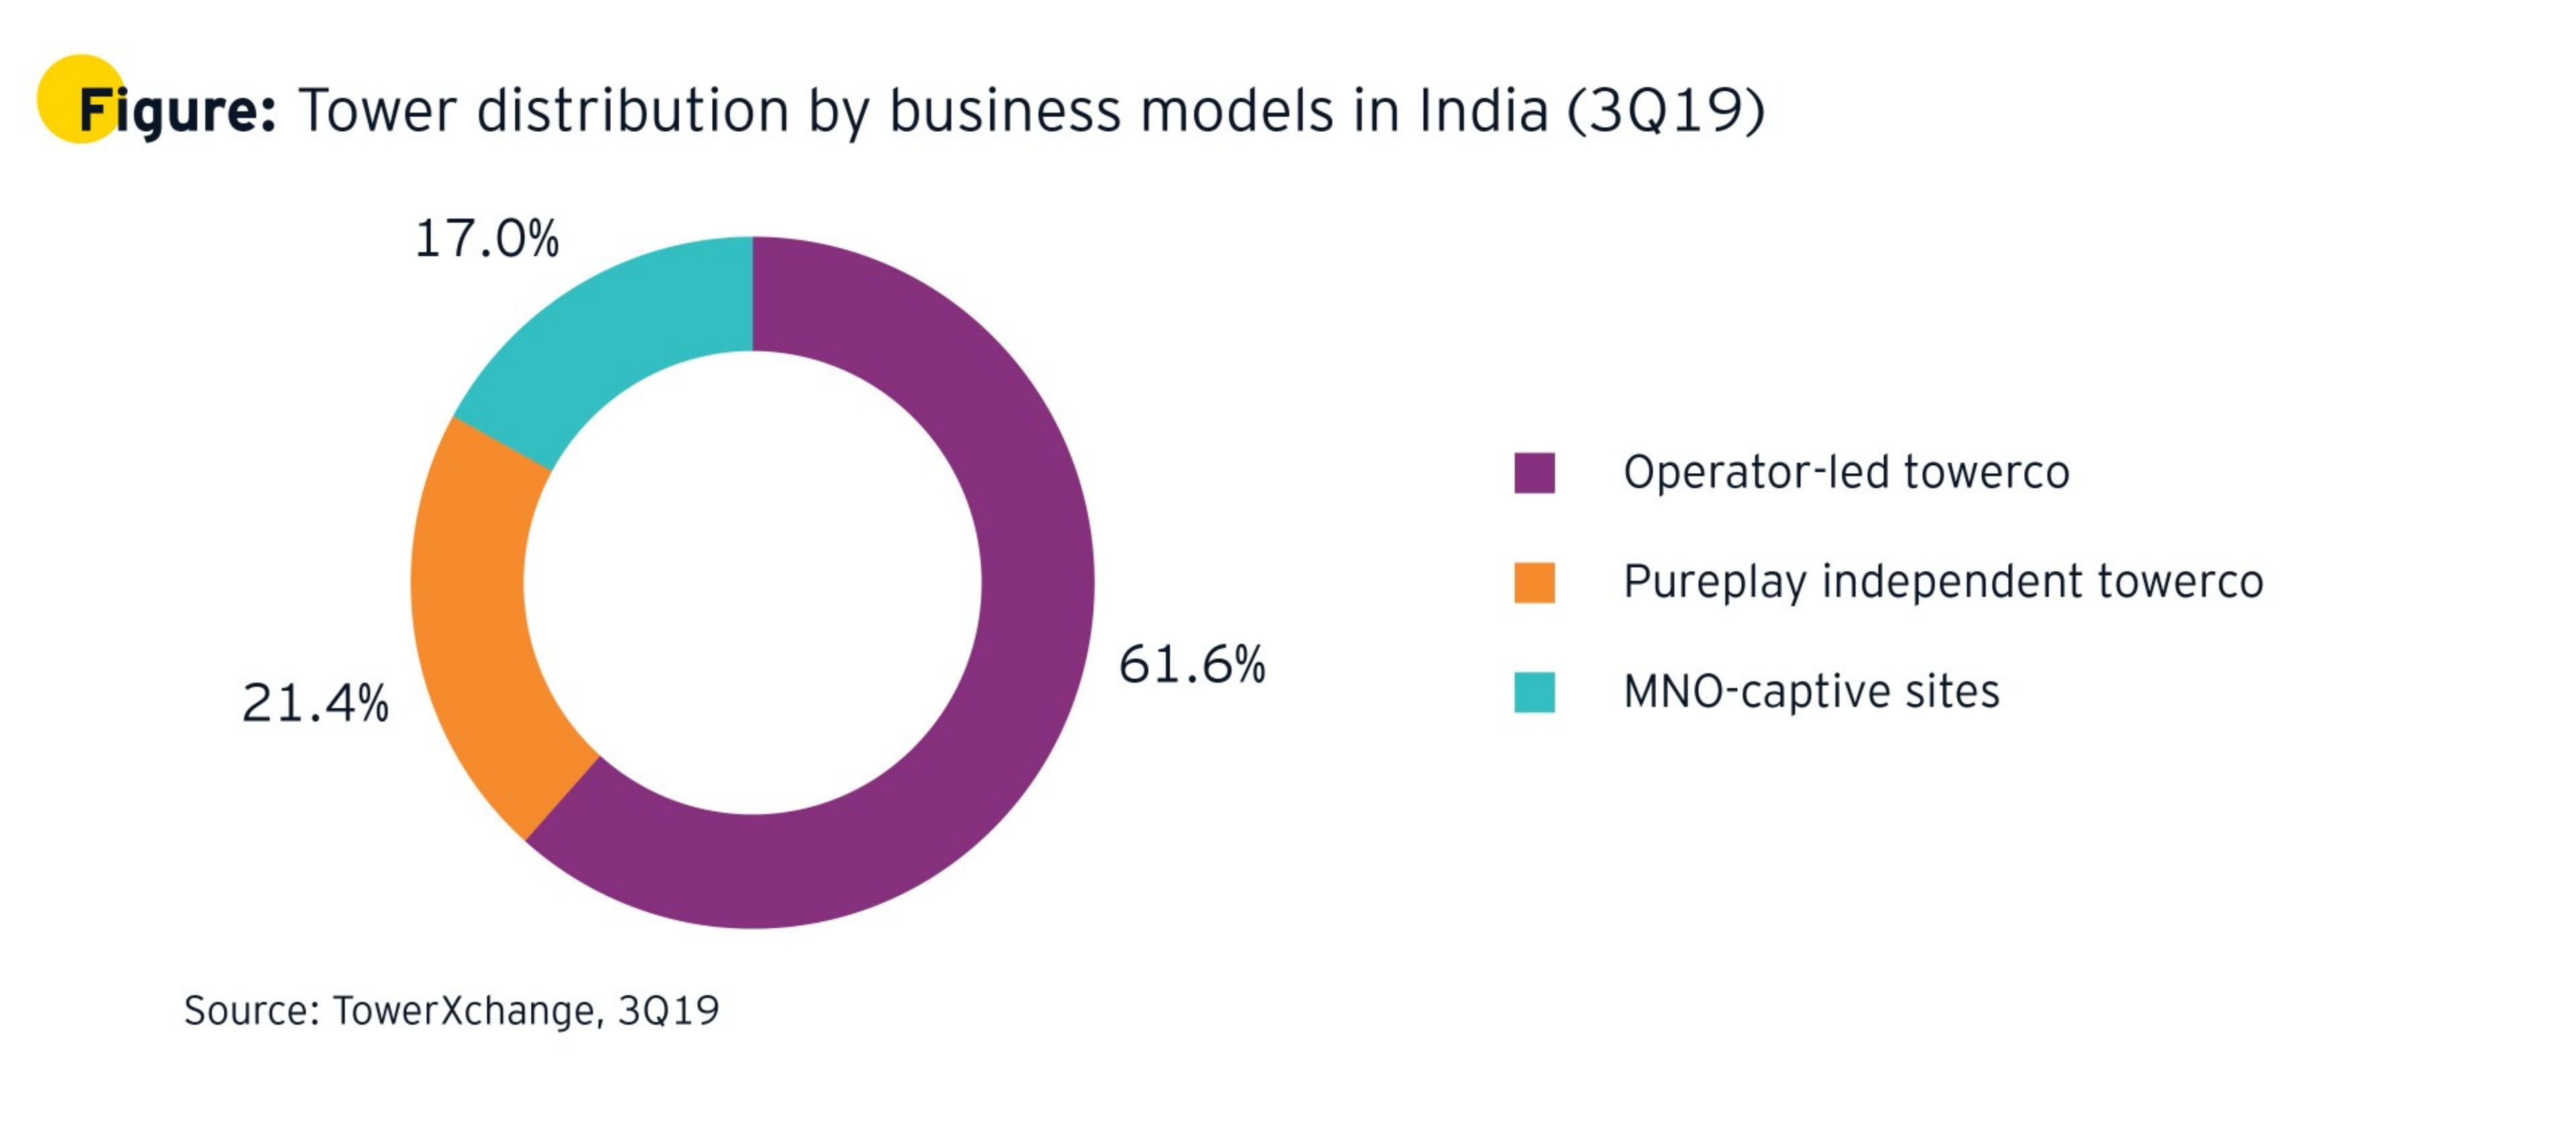 Tower distribution by business models in India